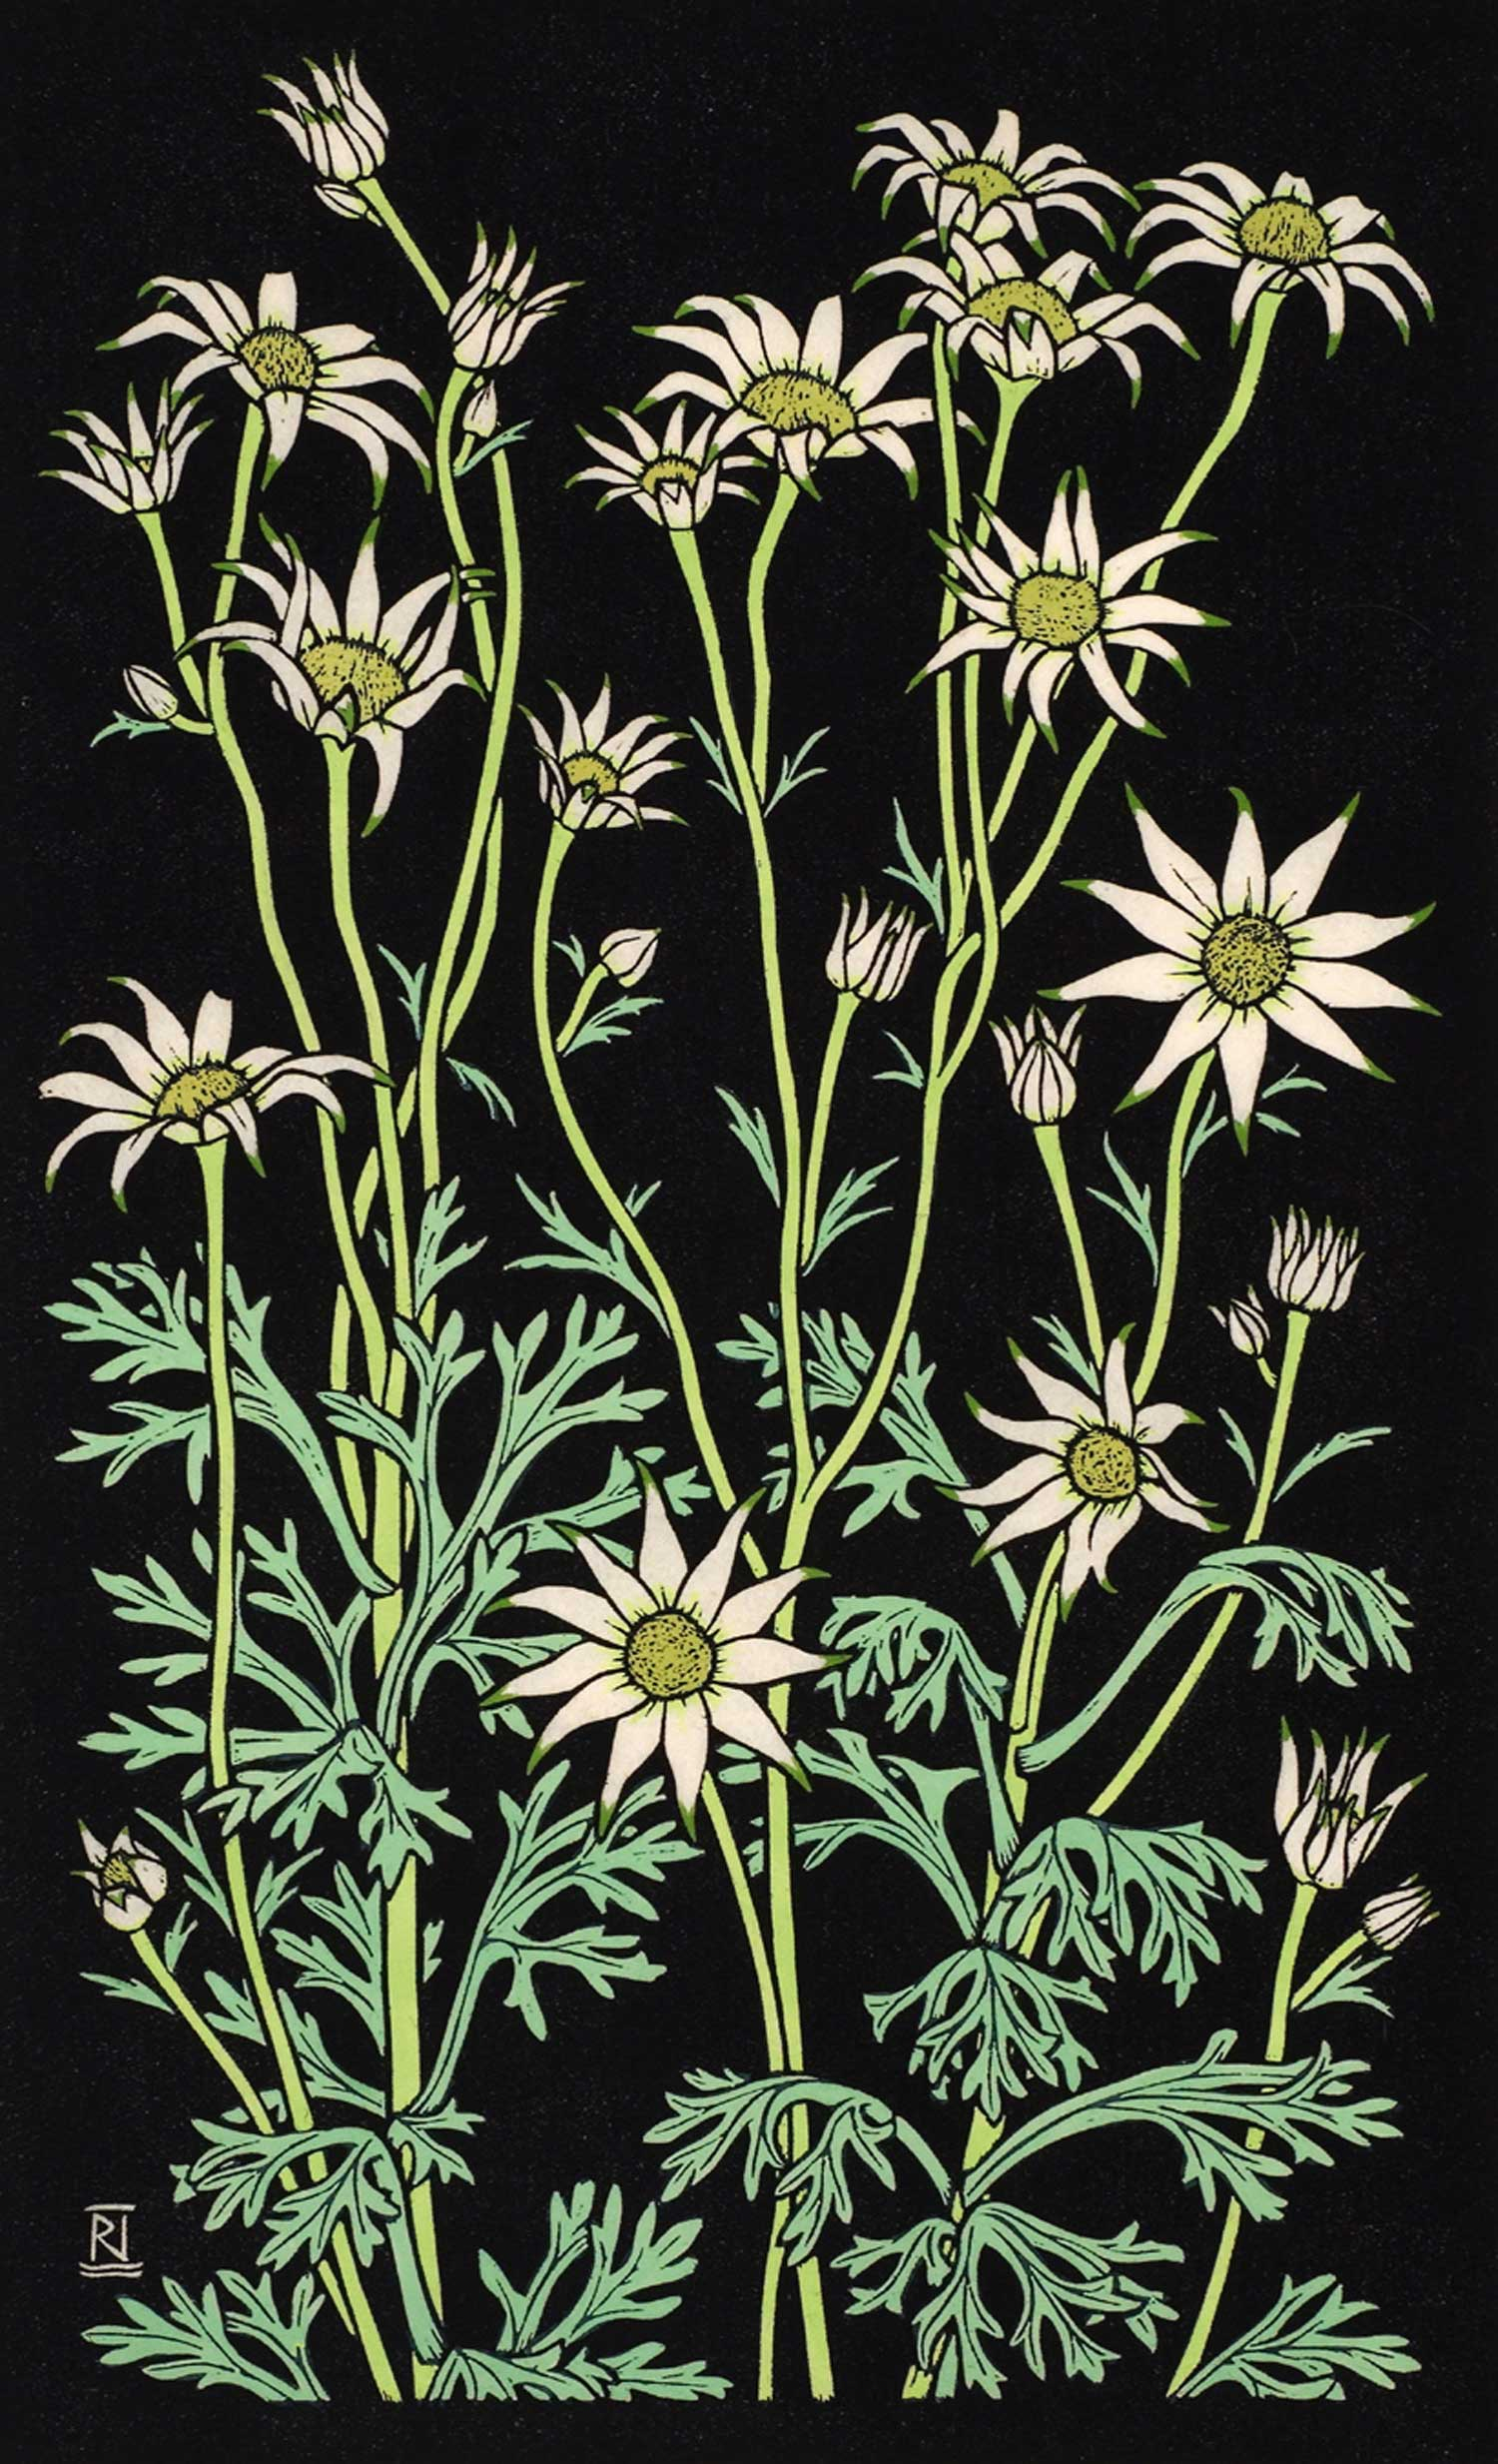 FLANNEL FLOWER III  49 X 30 CM EDITION OF 50  Hand coloured linocut on handmade Japanese paper  $1,050